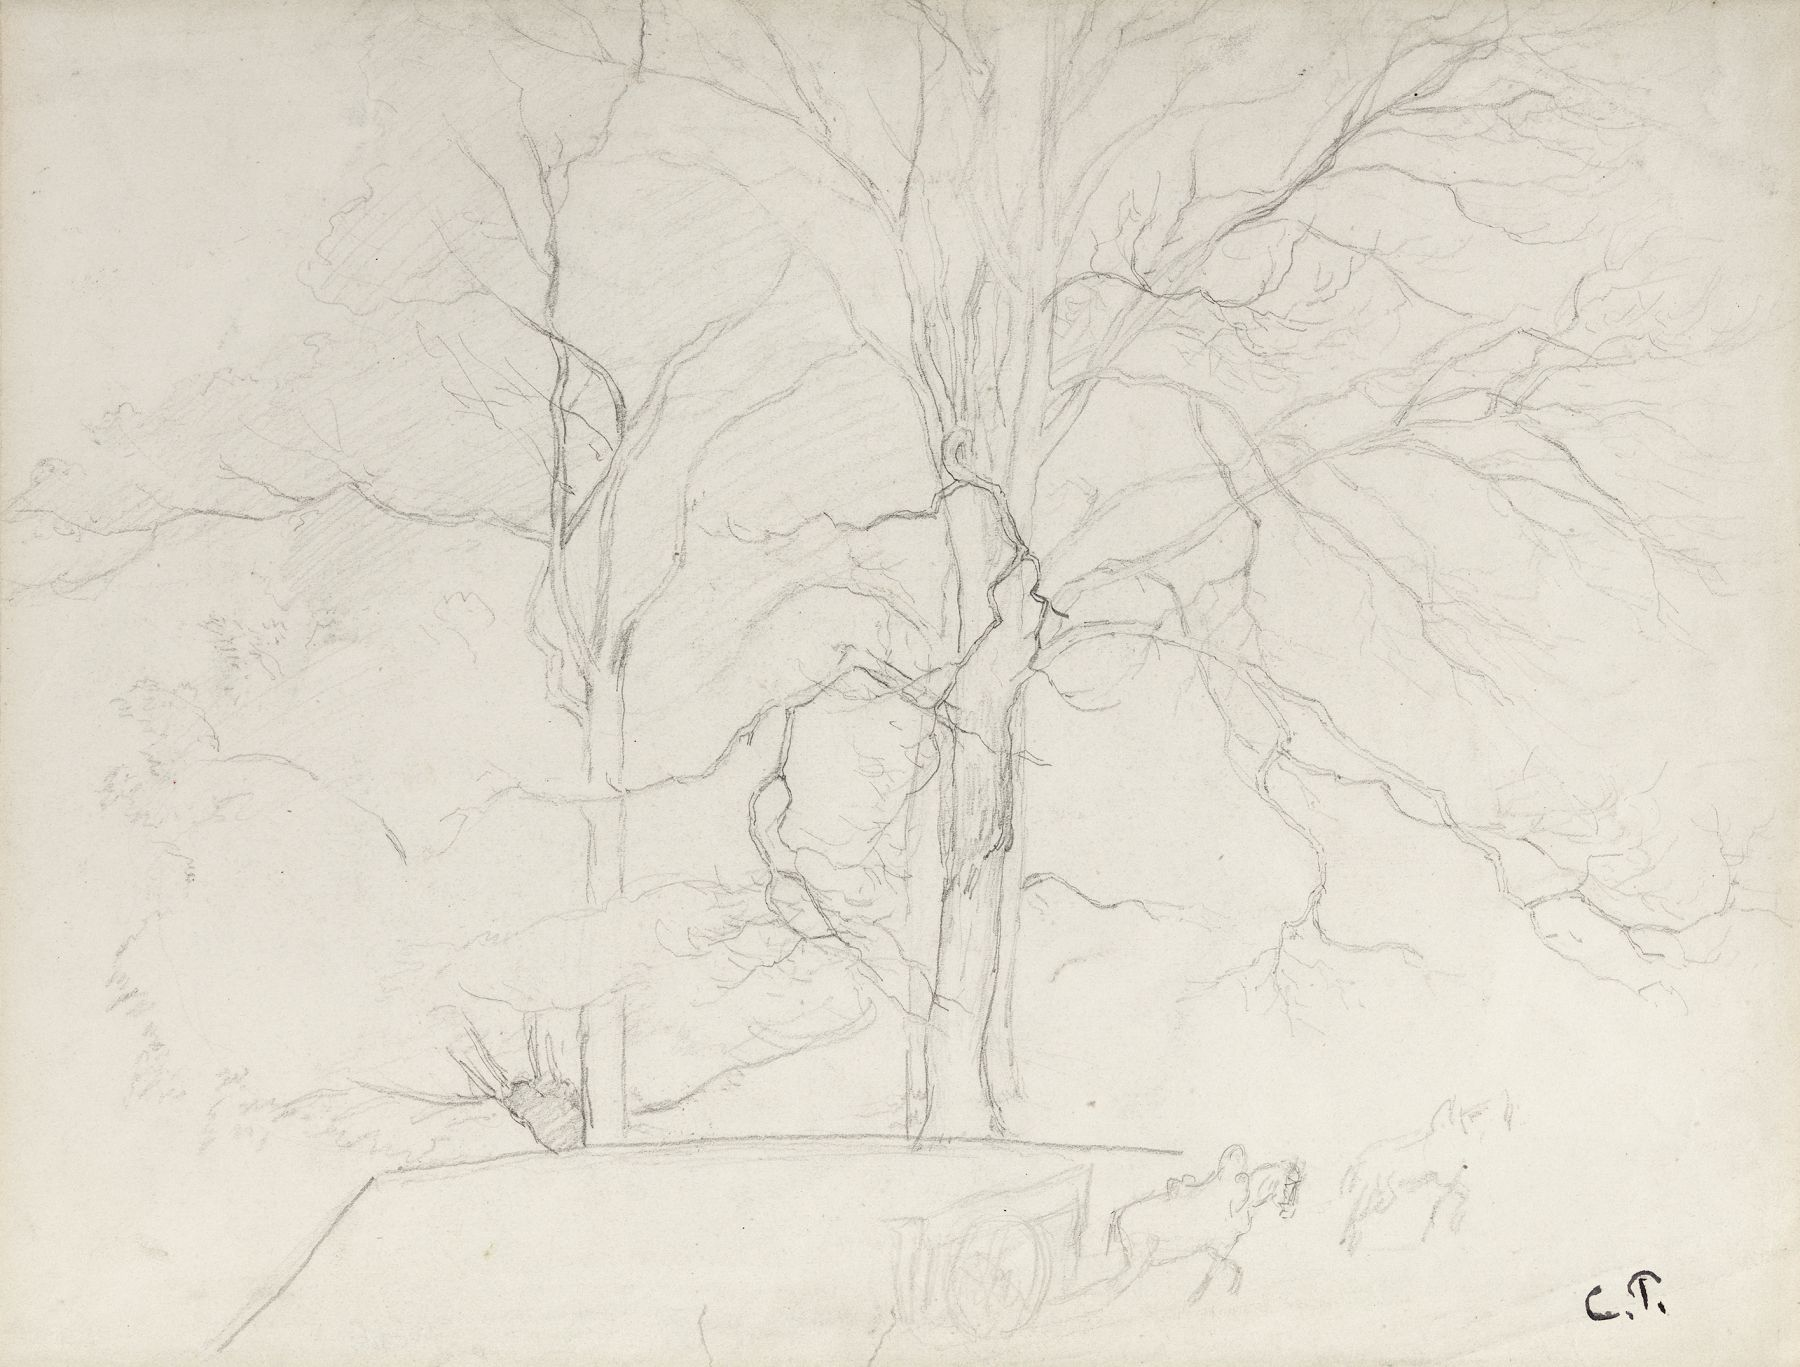 Camille Pissarro, Trees, Montmorency, c. 1855-60, Pencil on paper 12 1/2 x 16 1/2 inches